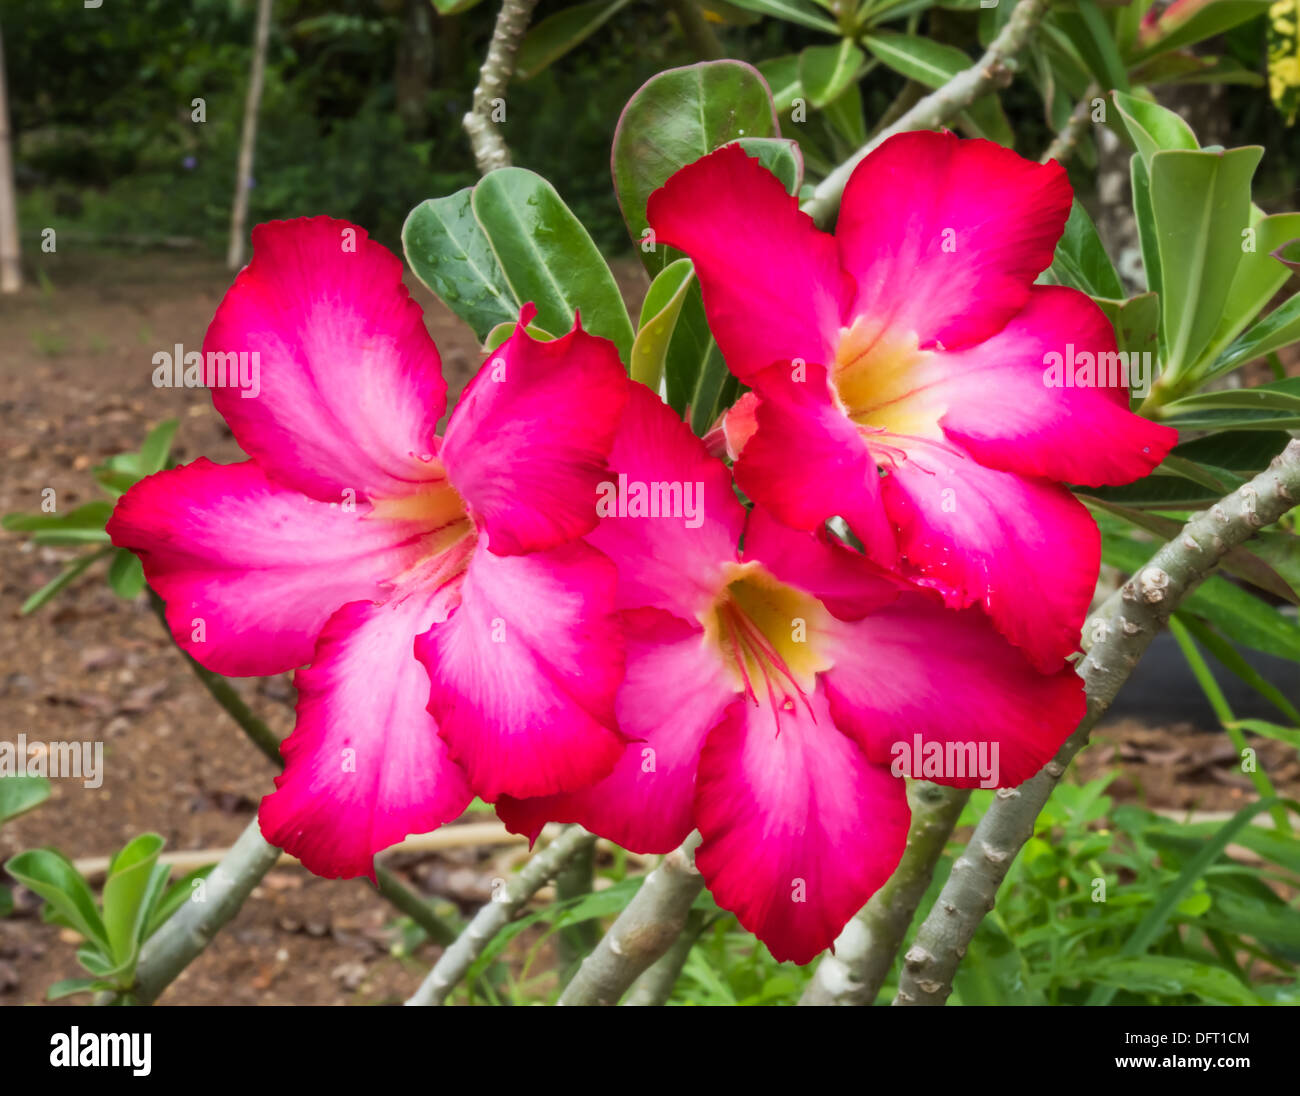 27f7a821df68 Red desert rose flower close up and flowers at backgroud - Stock Image